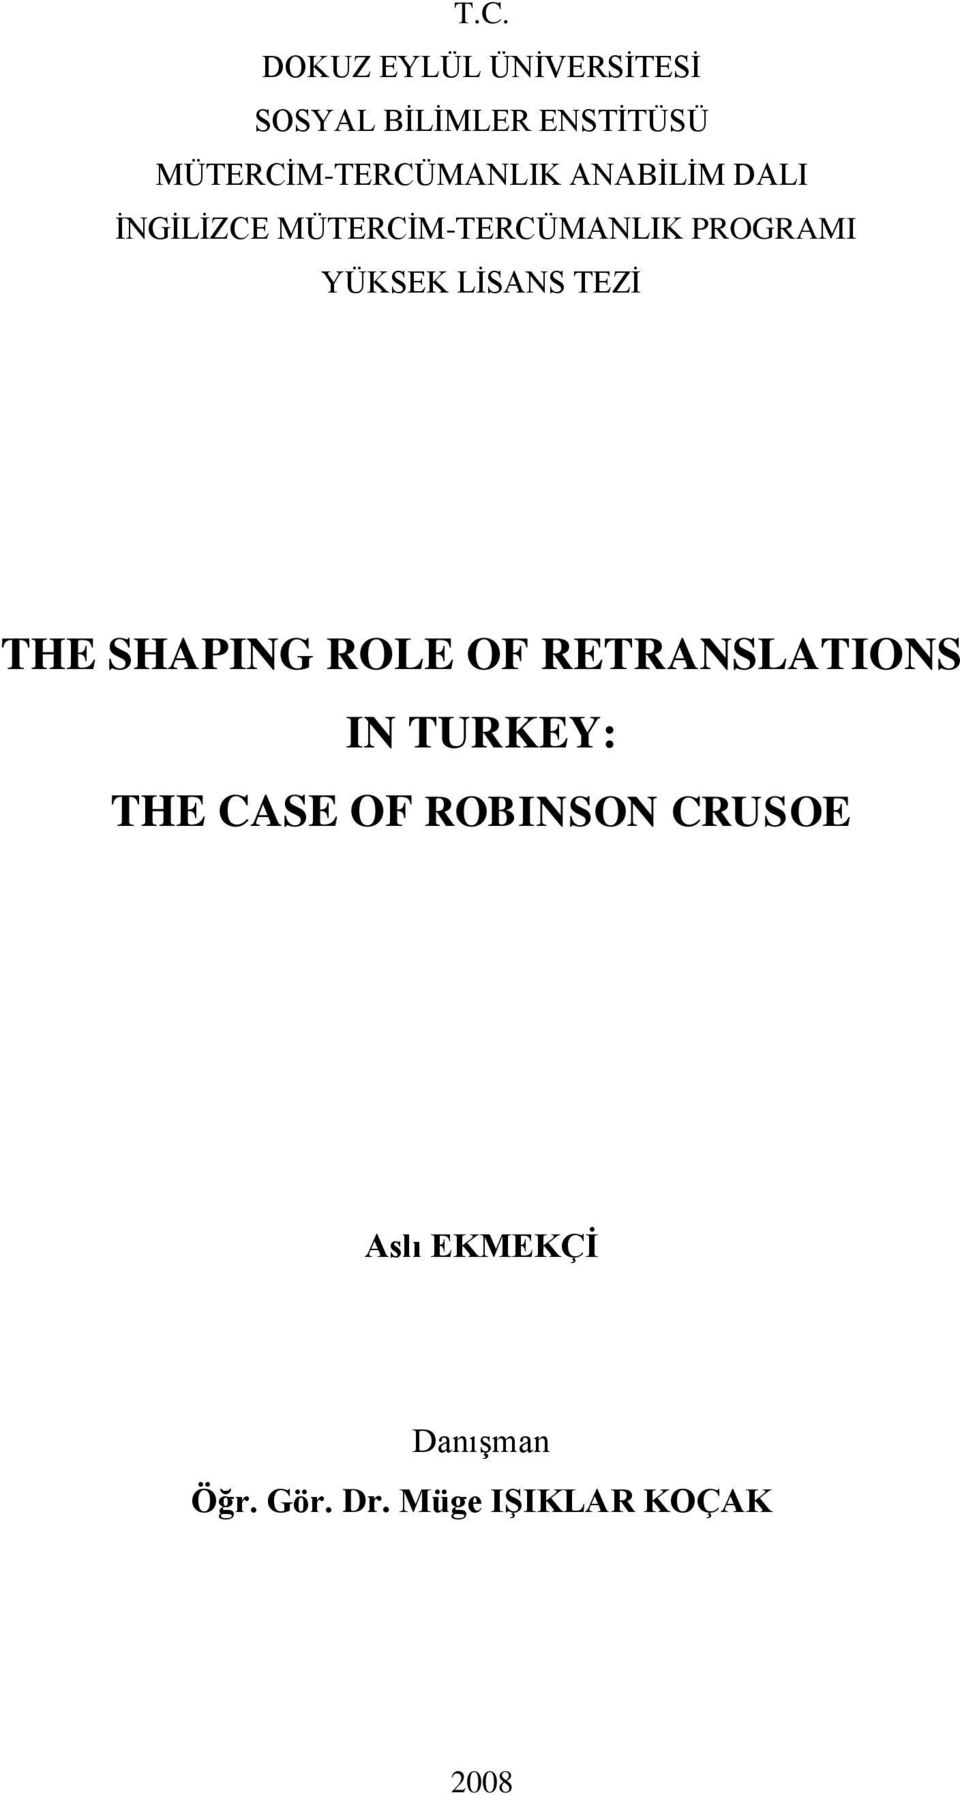 PROGRAMI YÜKSEK LĠSANS TEZĠ THE SHAPING ROLE OF RETRANSLATIONS IN